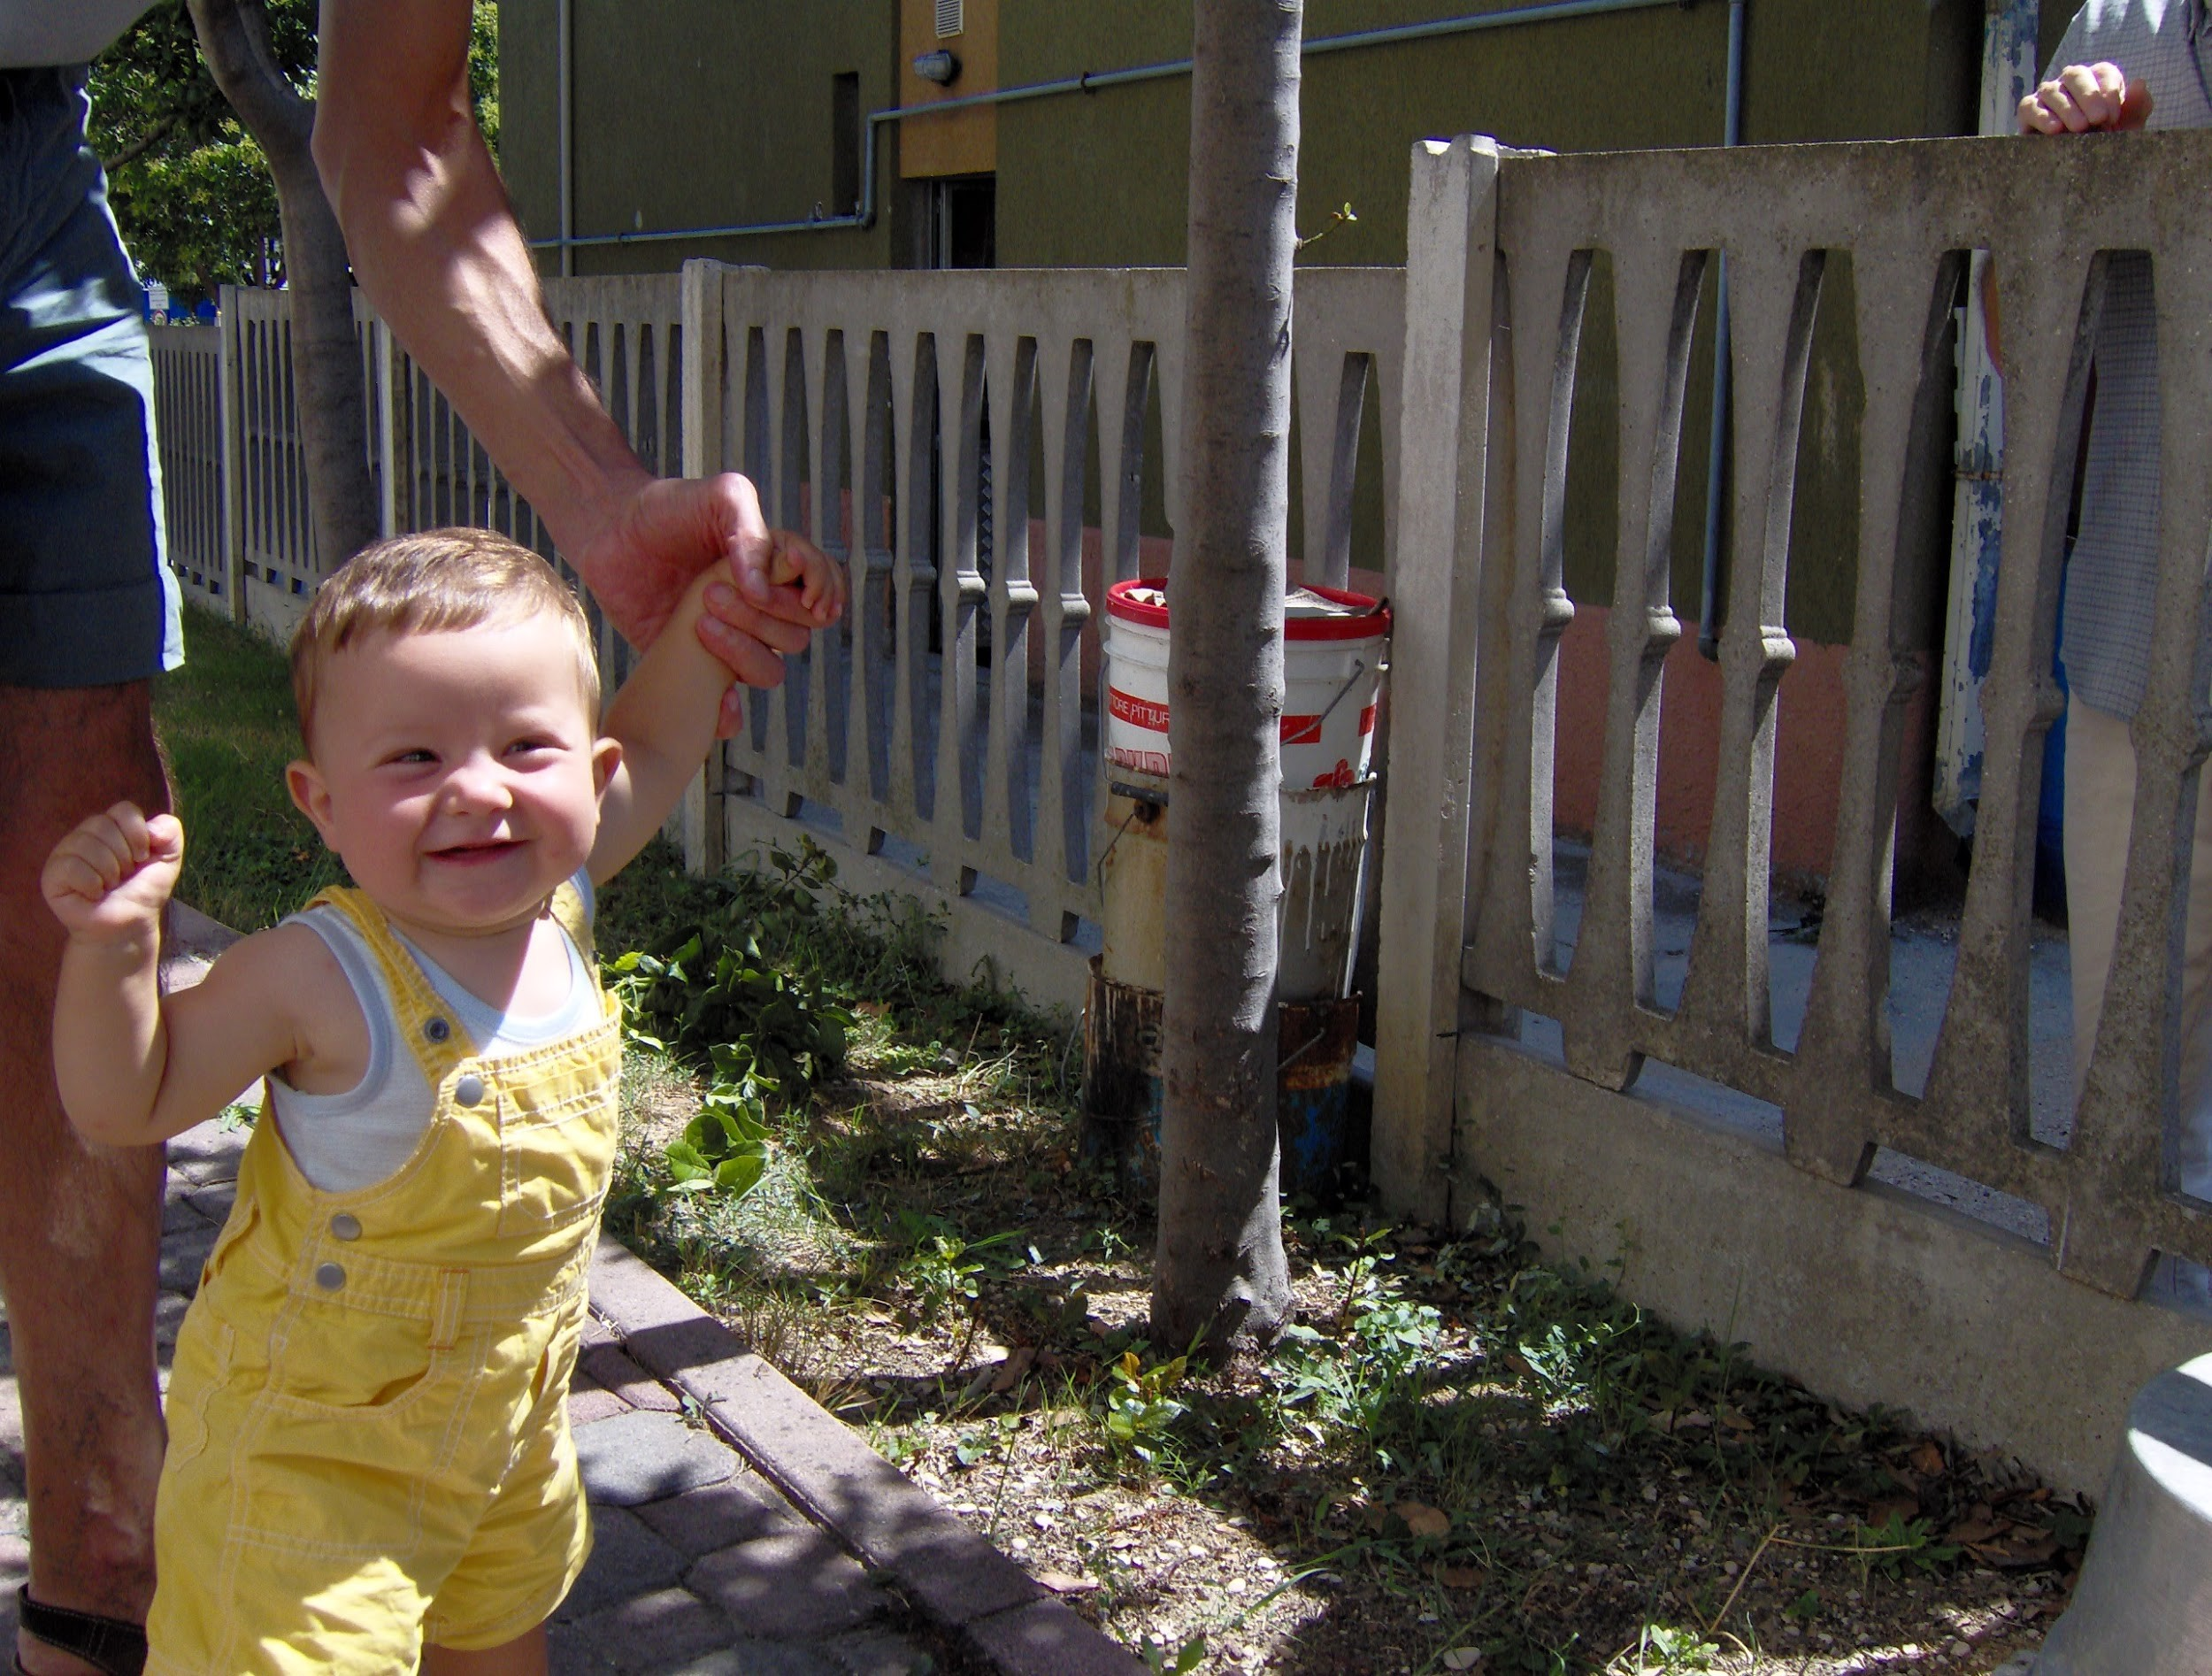 Baby To Toddlerhood: What To Be Aware Of During The Next Few Years.